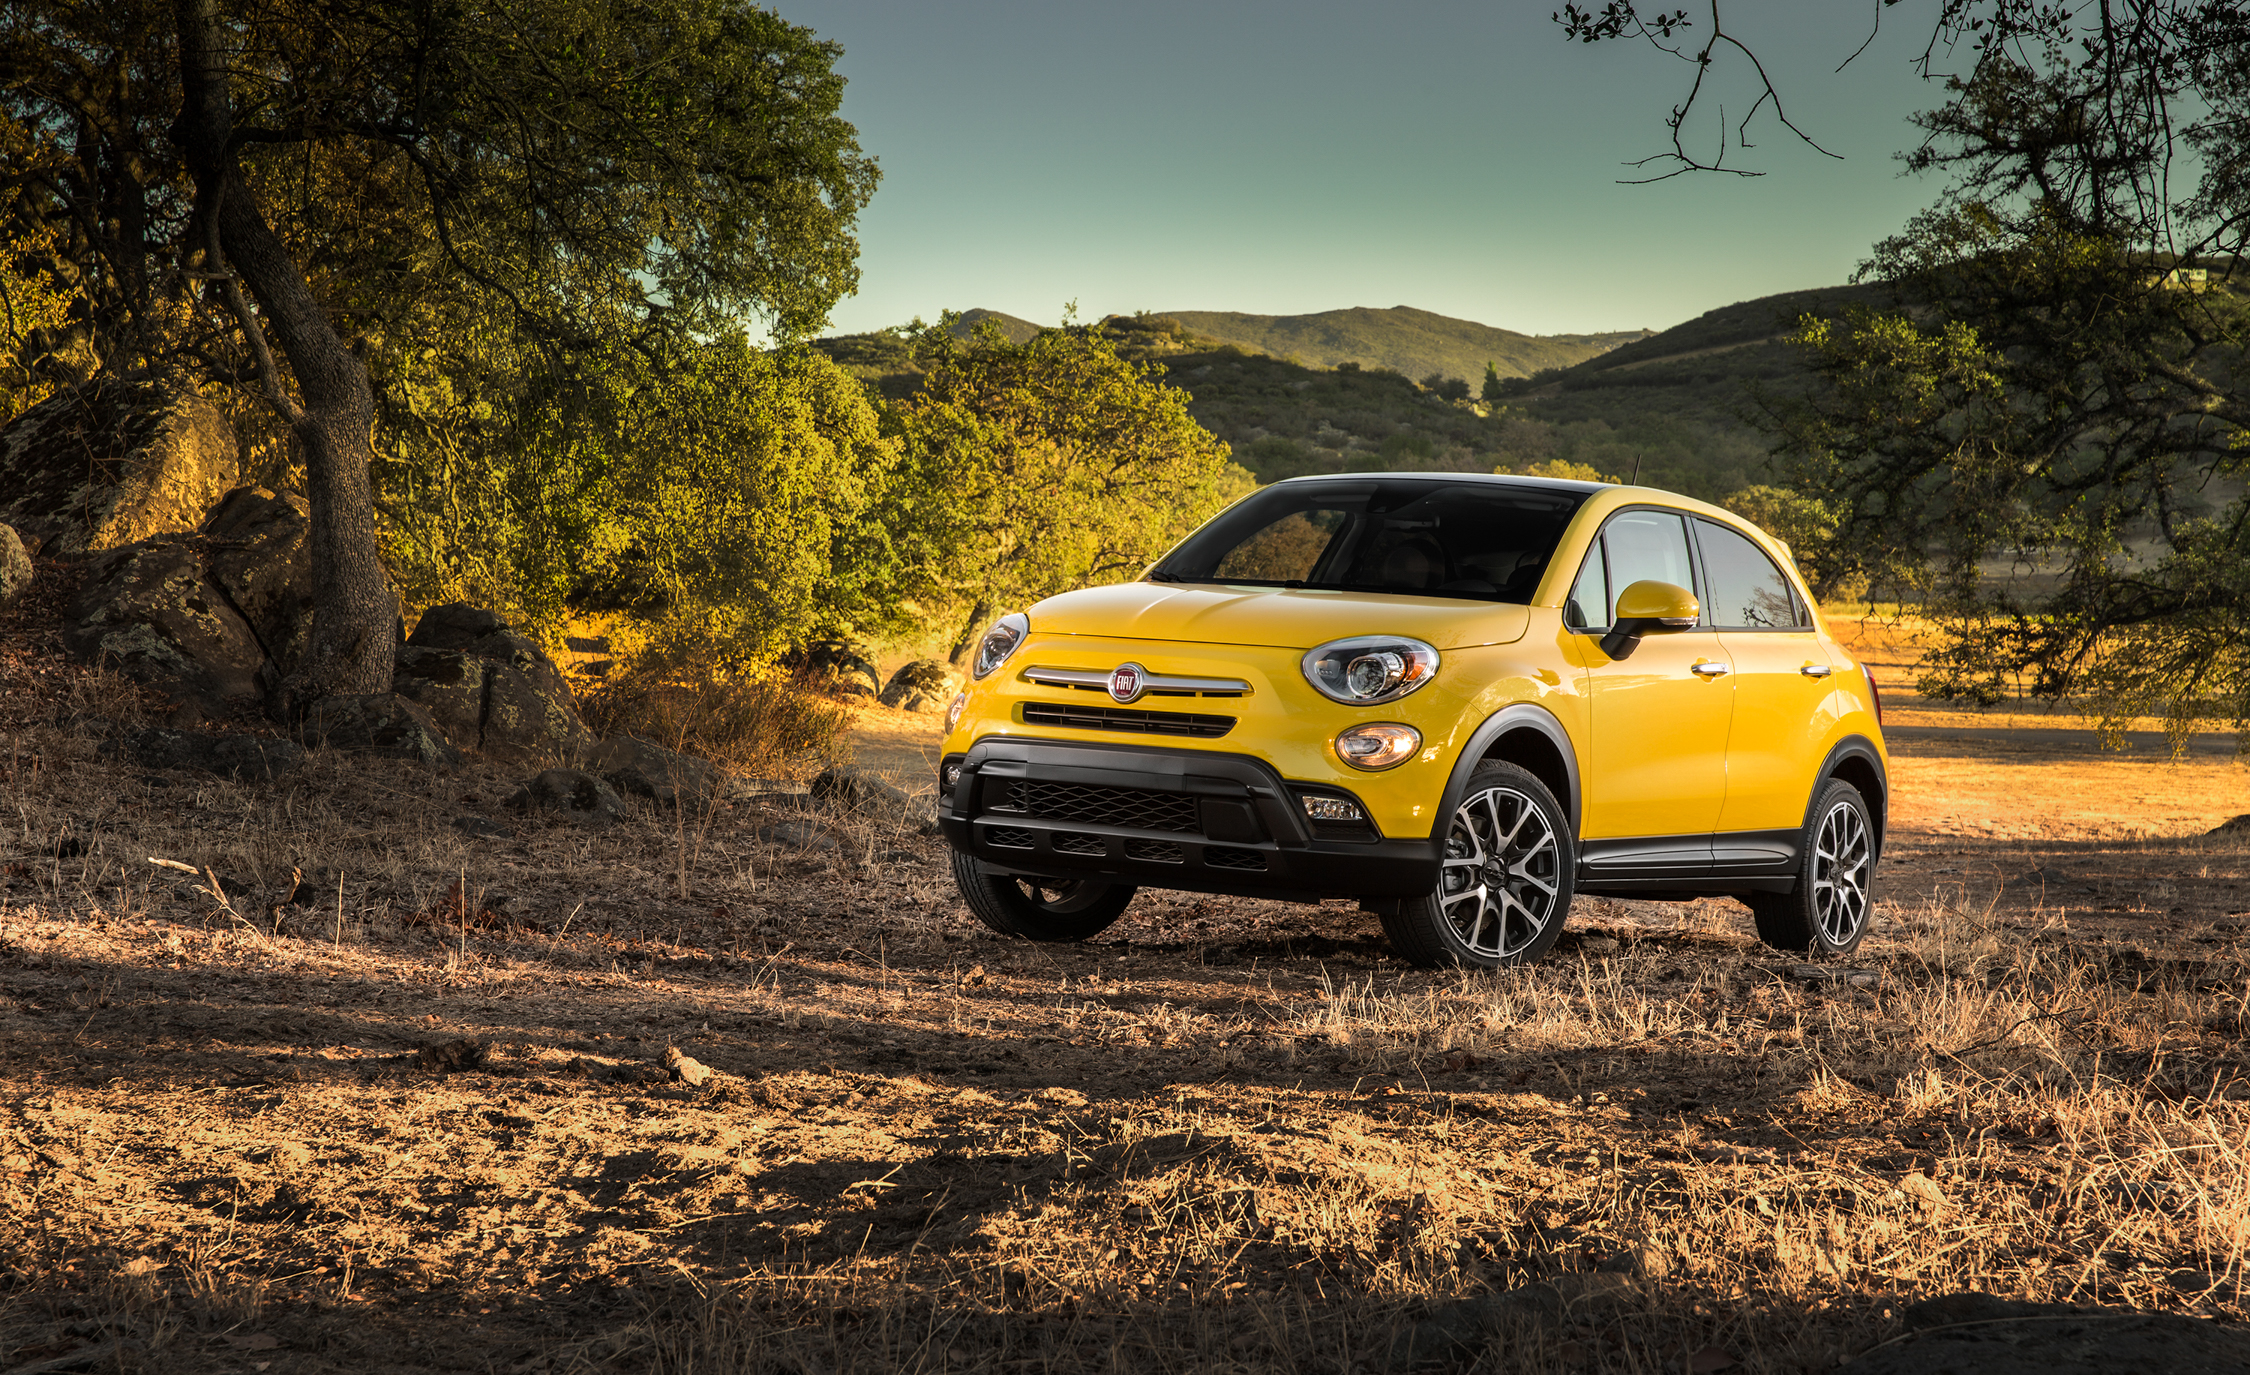 2016 Fiat 500X Trekking Plus Yellow Off Road Test